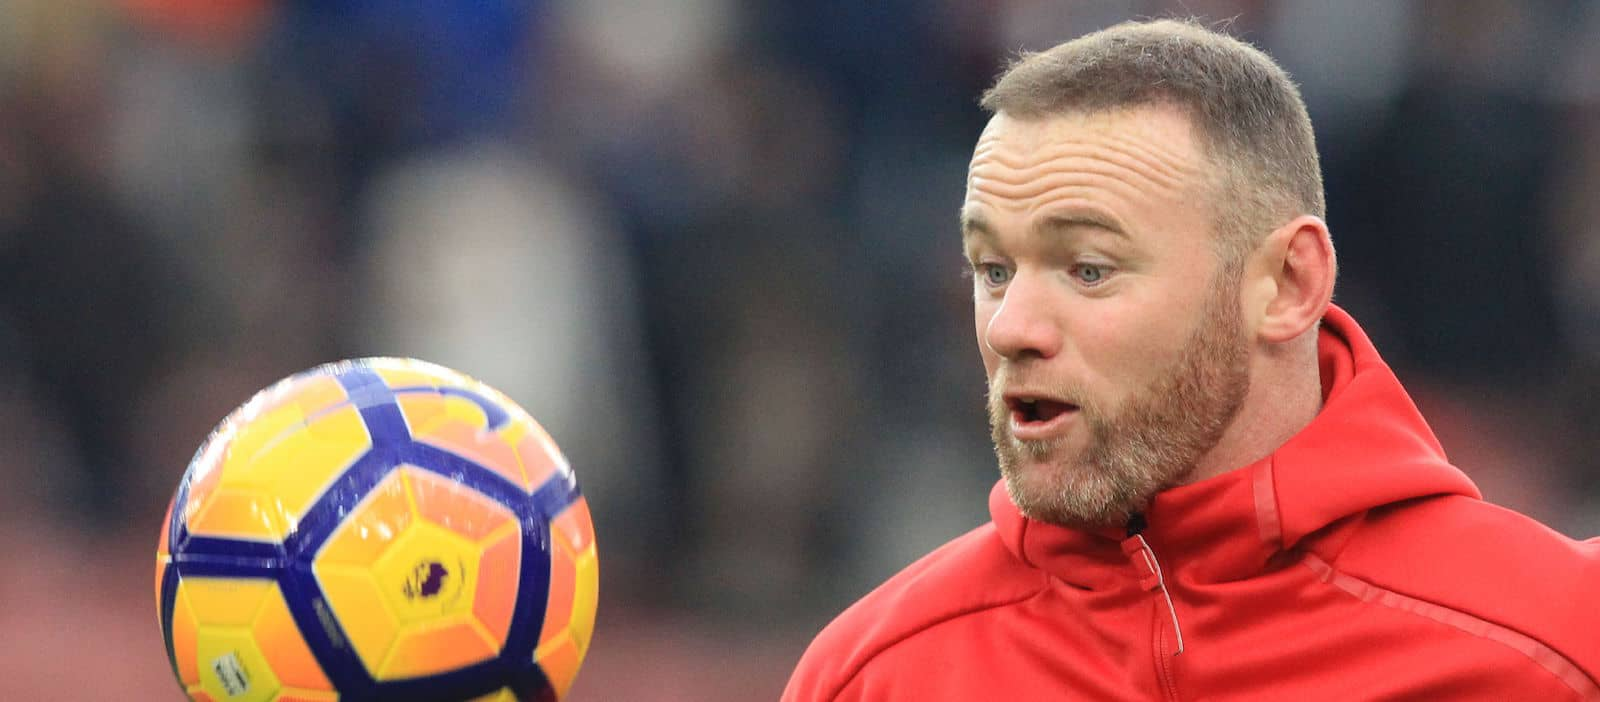 Gareth Southgate reveals doubts over Wayne Rooney's future as England captain